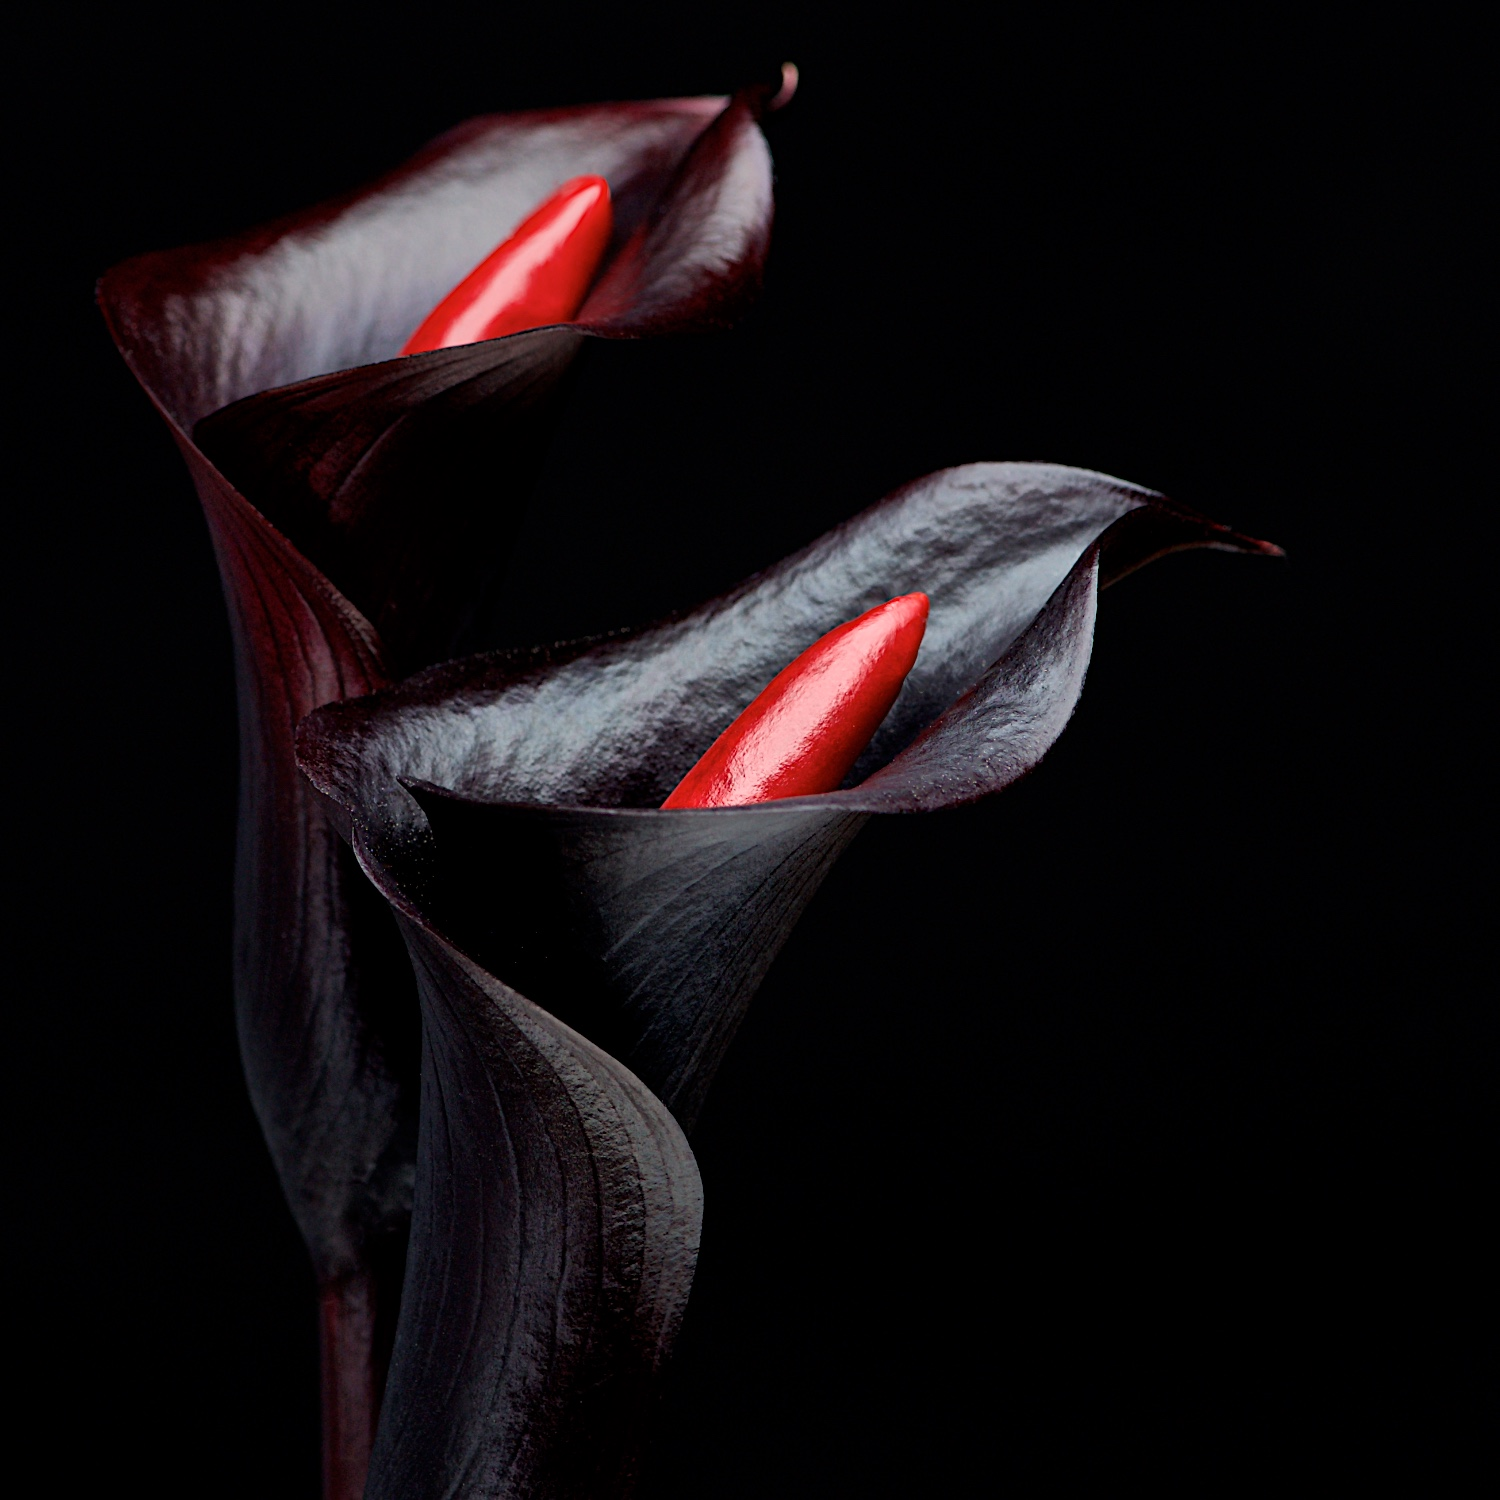 Black Calla Lilies with red chili peppers concept on dark background by Bret Doss Commercial Food & Product Photography  Seattle